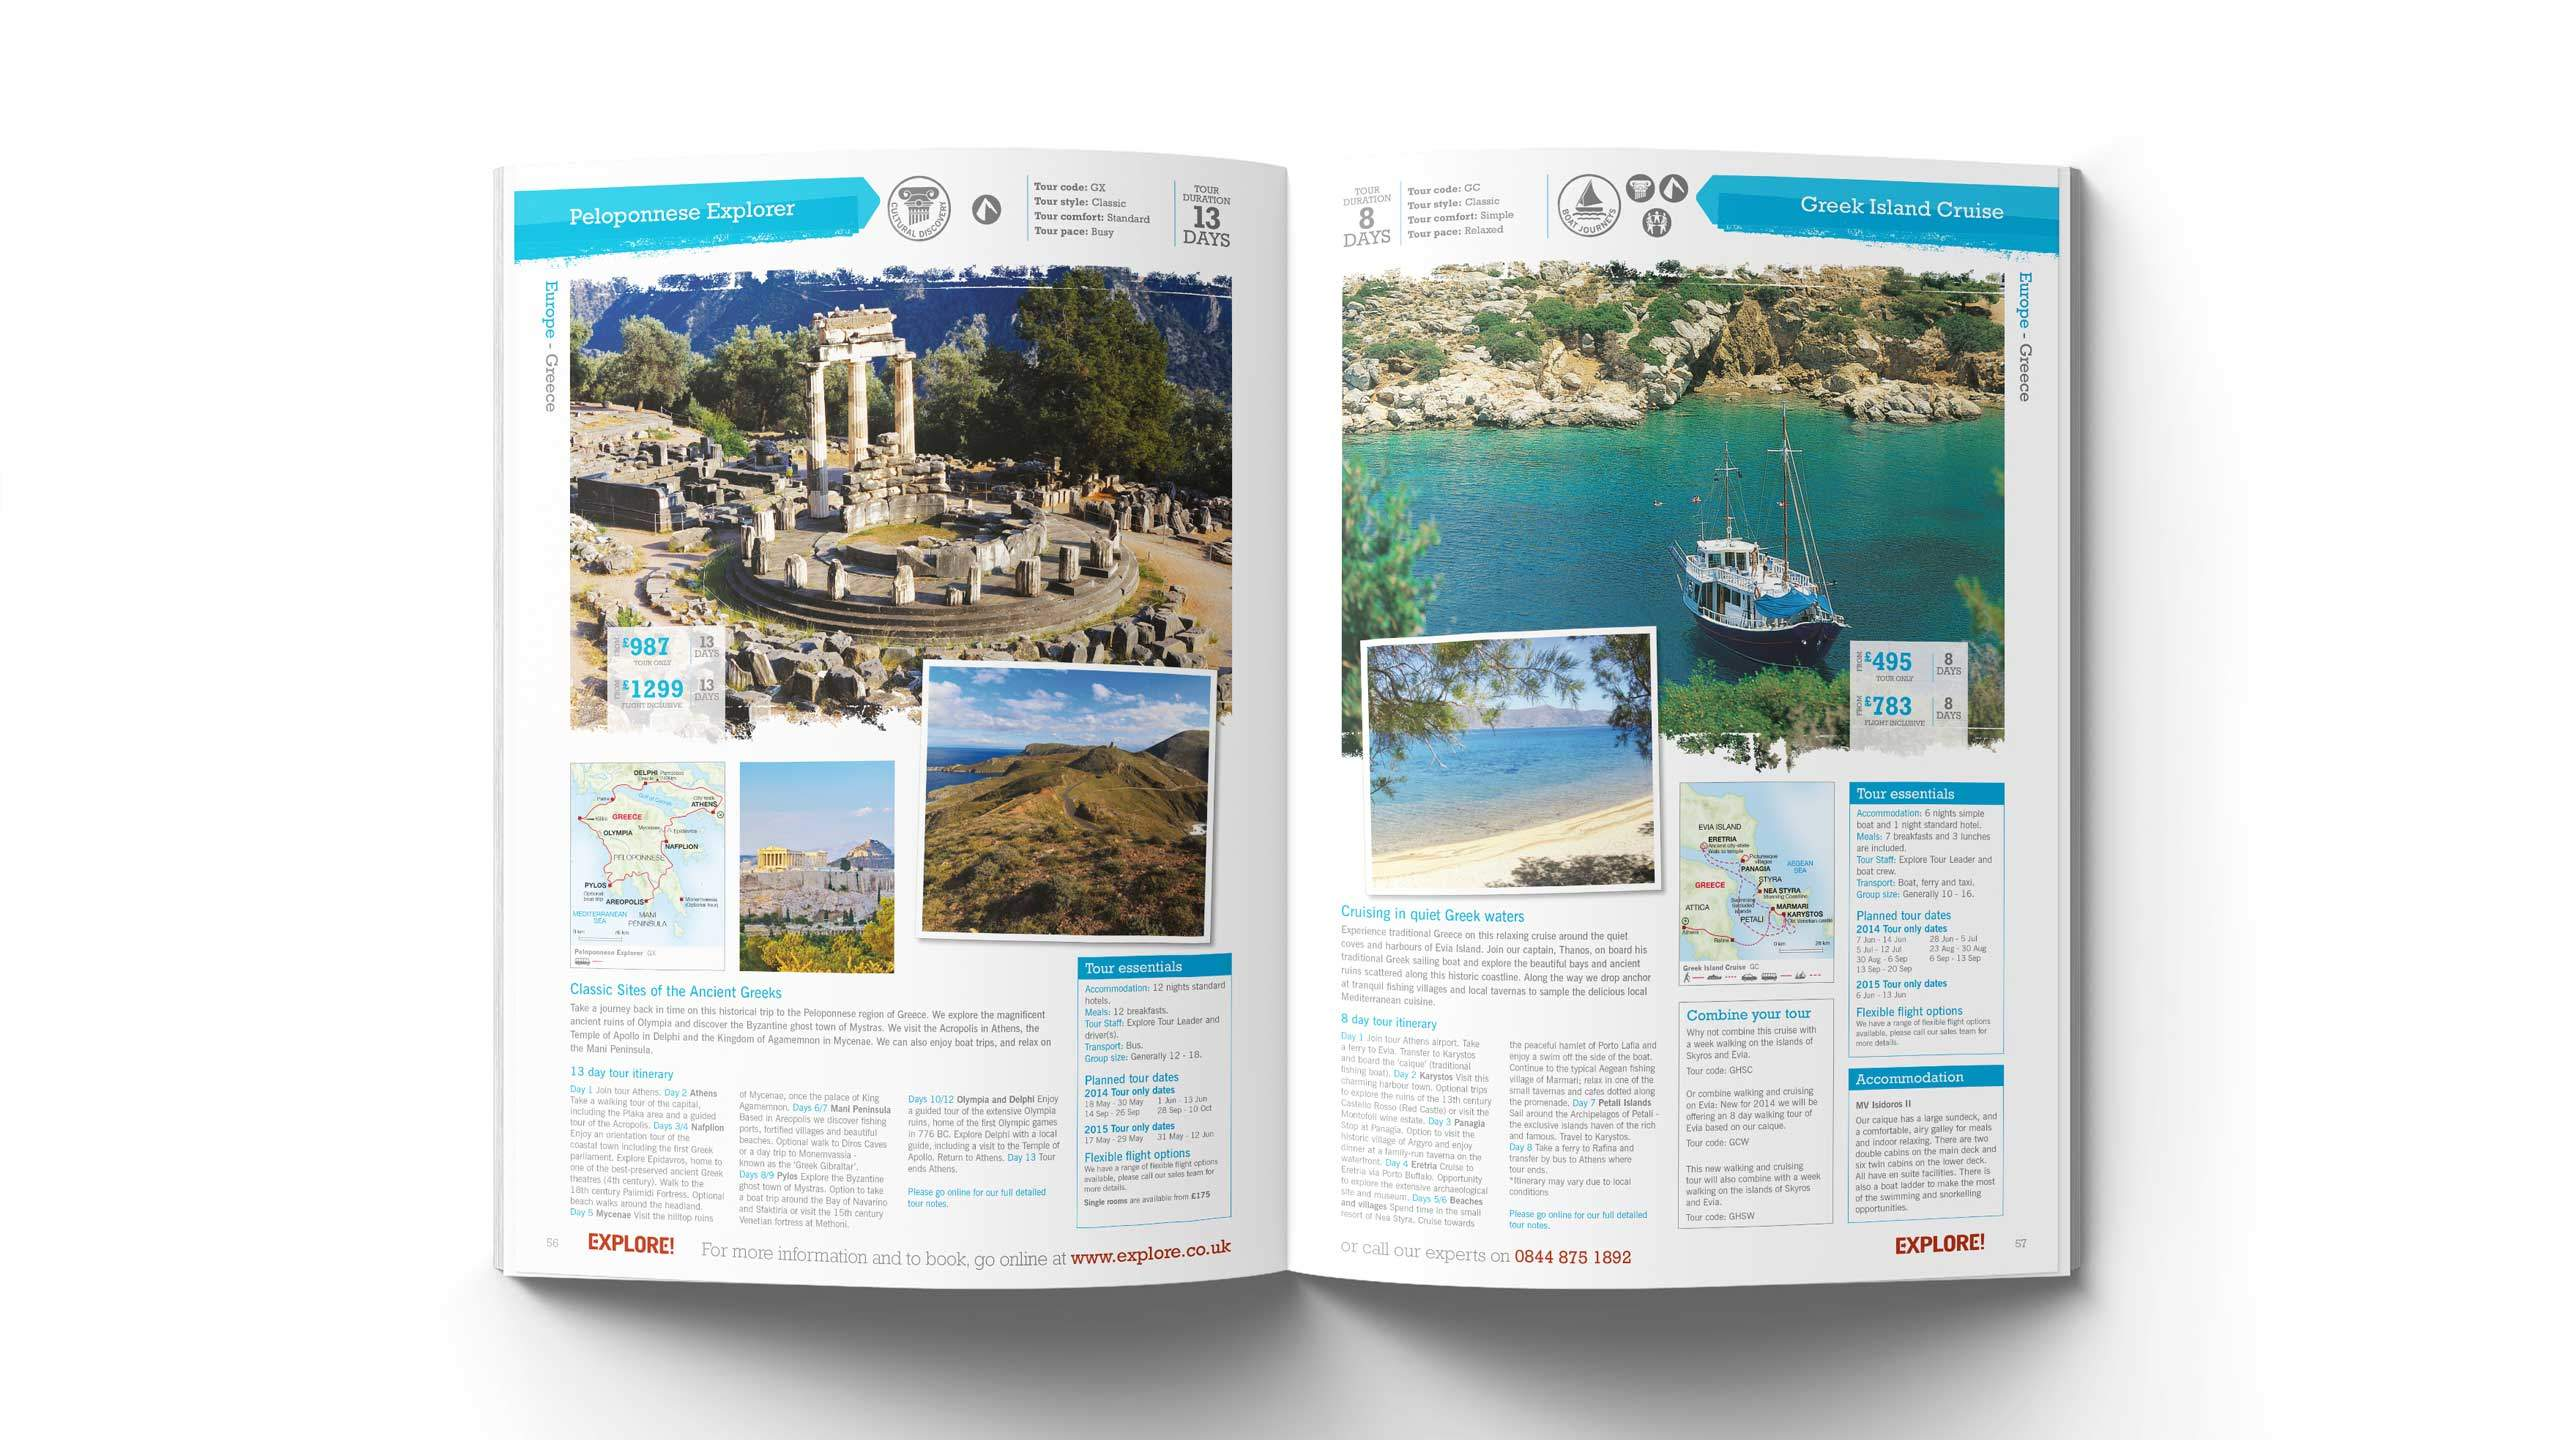 adventure travel brochure design peloponnese greek island pages explore worldwide